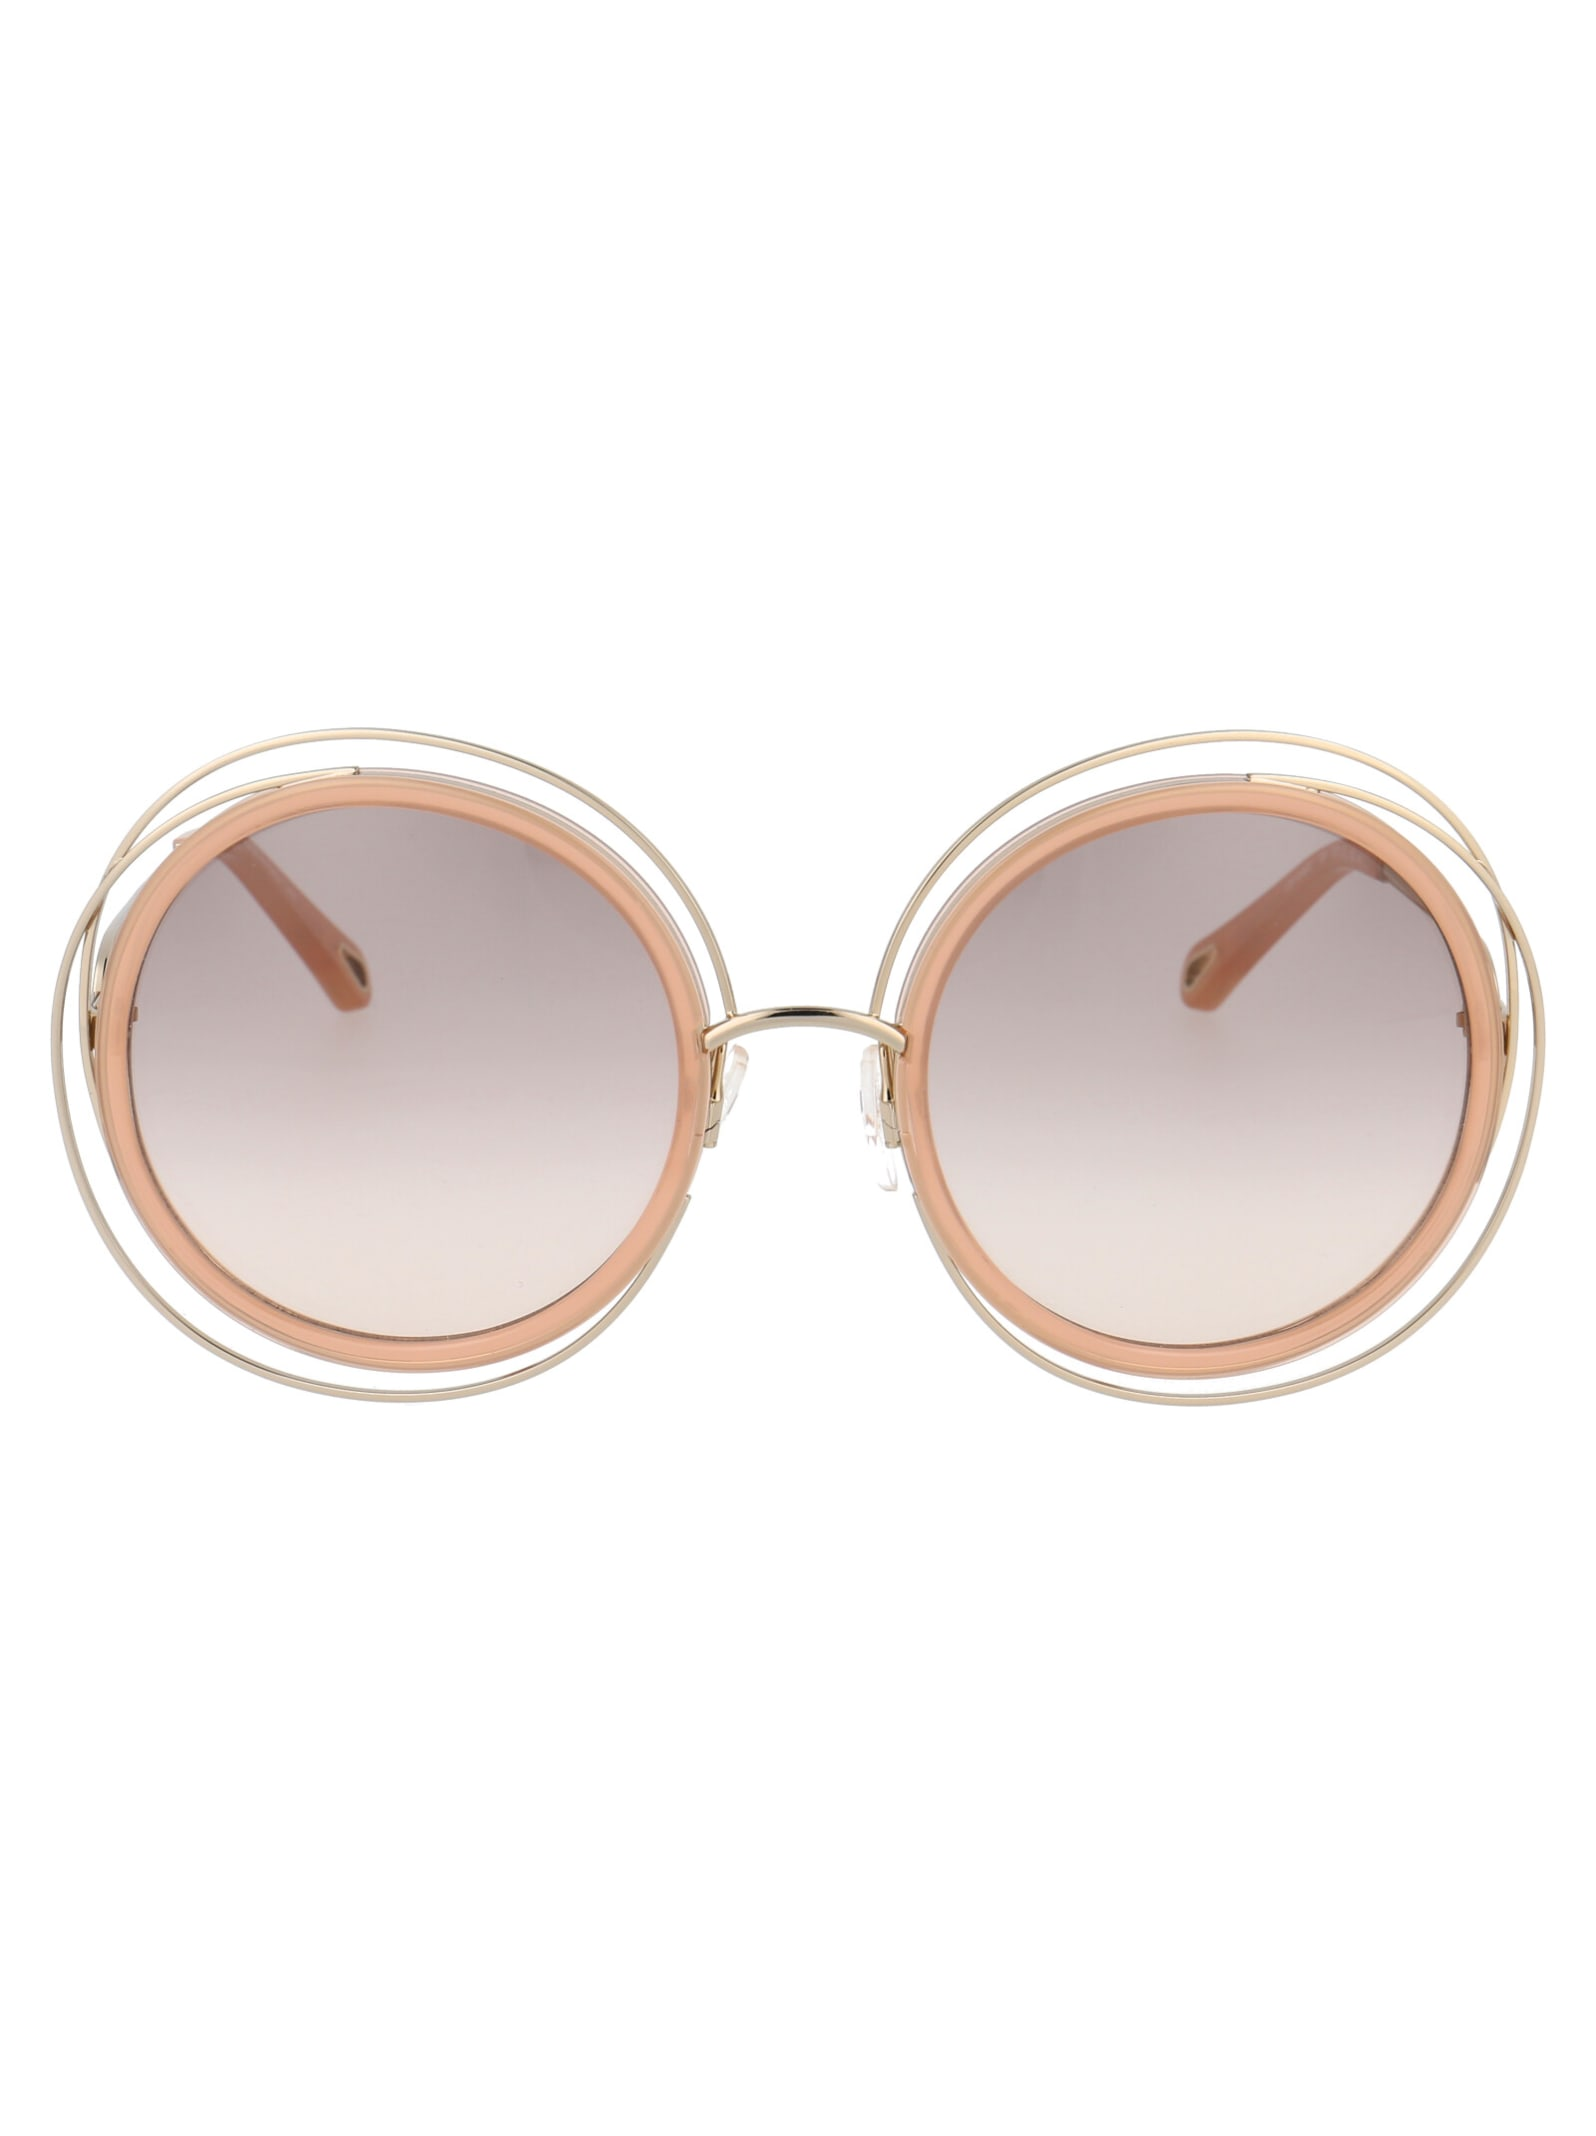 Sunglasses from ChloéComposition: Metal